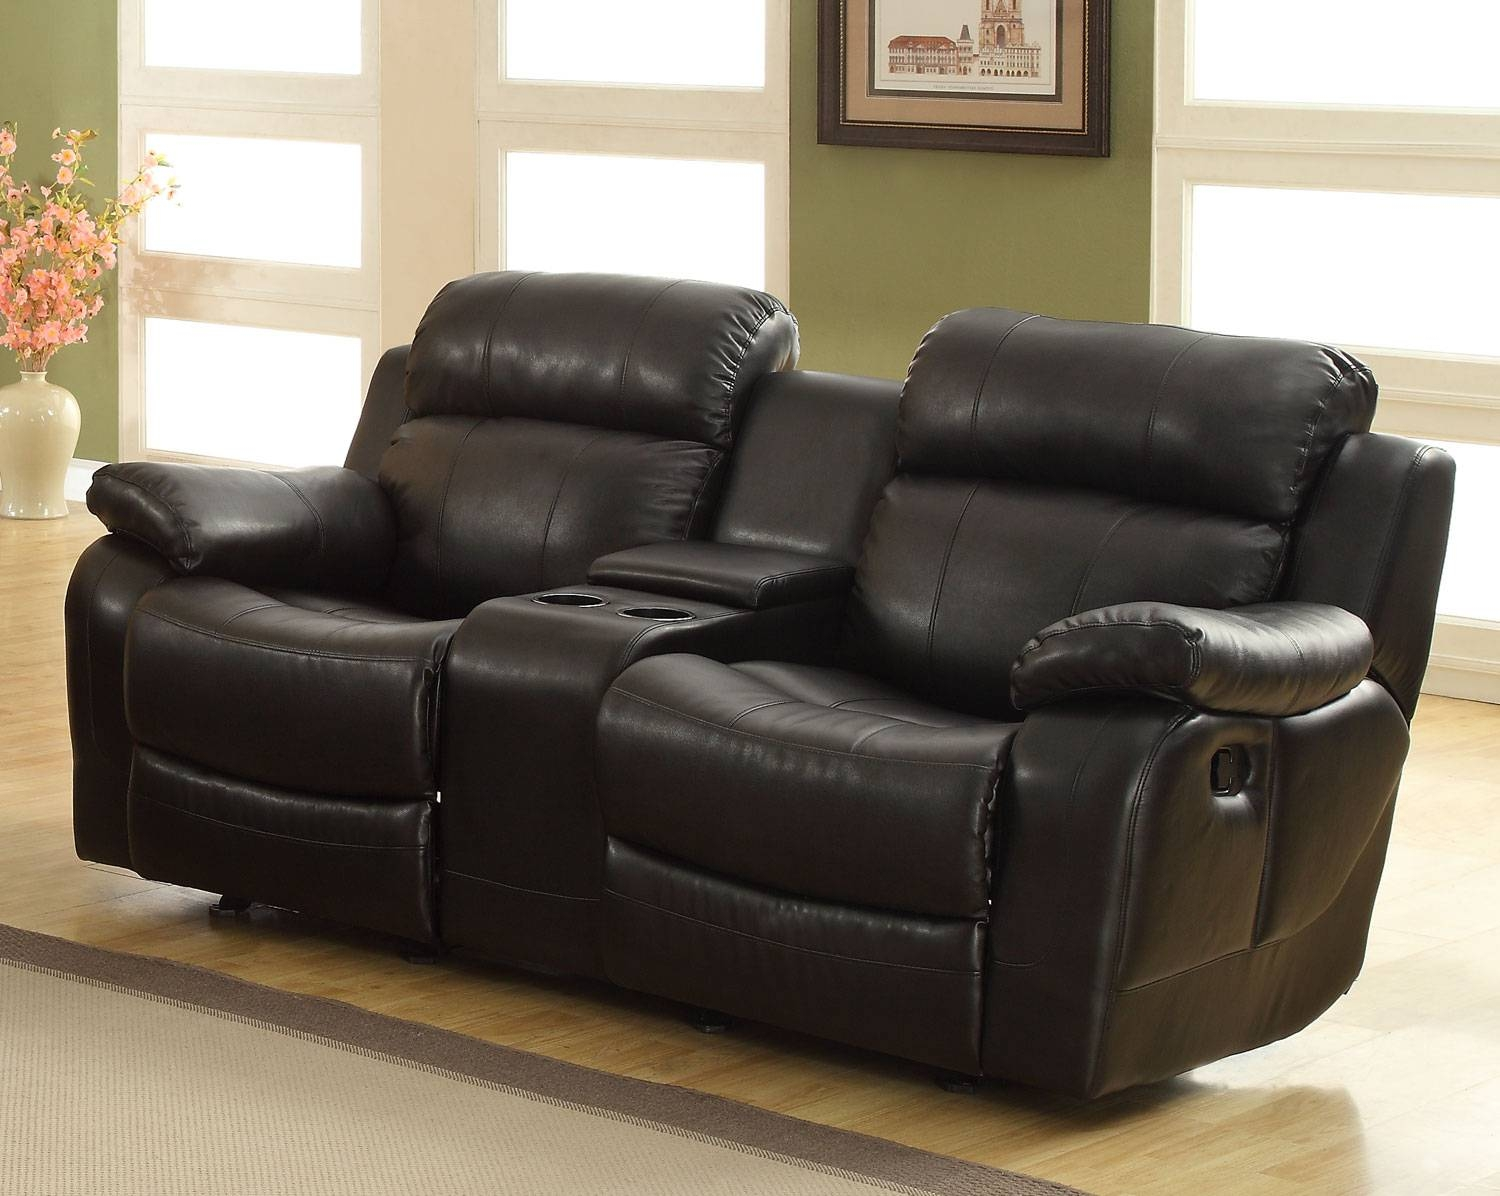 Sofas Center : Beigeing Sofa Best Decoration Double With Center Intended For Sofas With Consoles (View 7 of 30)